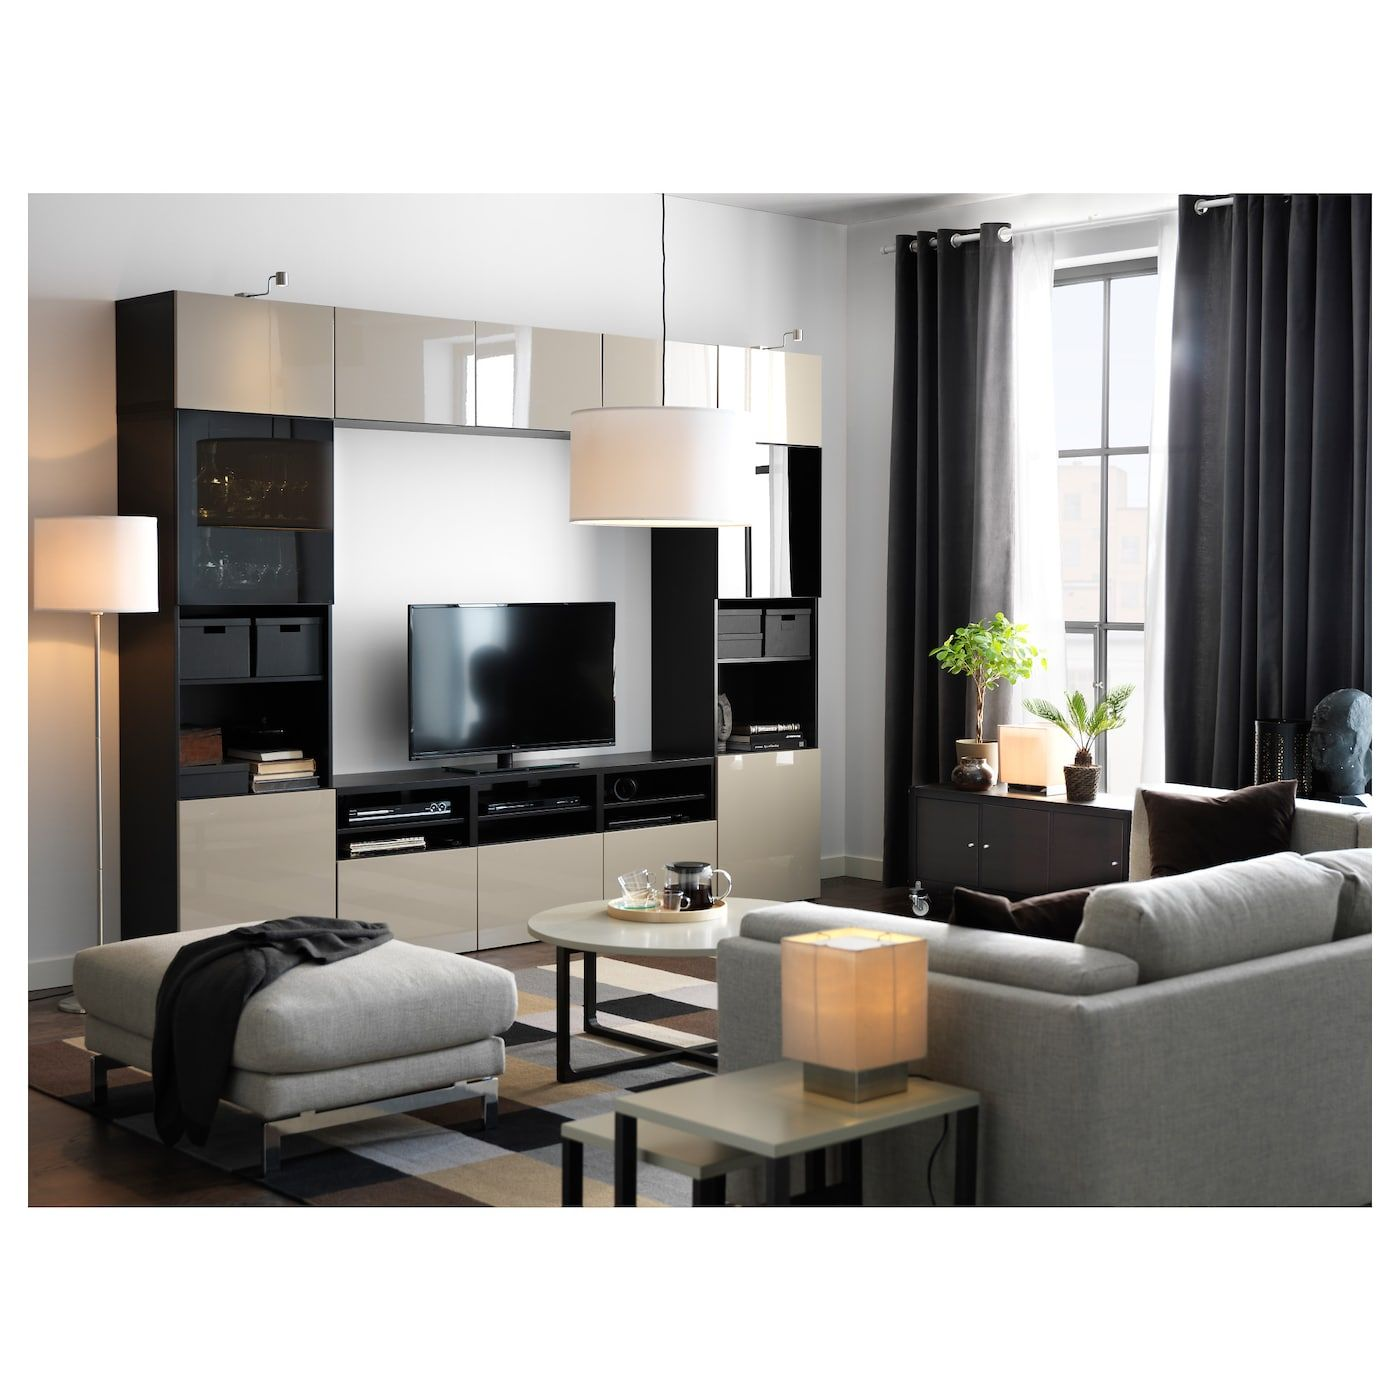 Pin By Tanya On Home Ideas Ikea Living Room Living Room Sets Furniture Dream Living Rooms